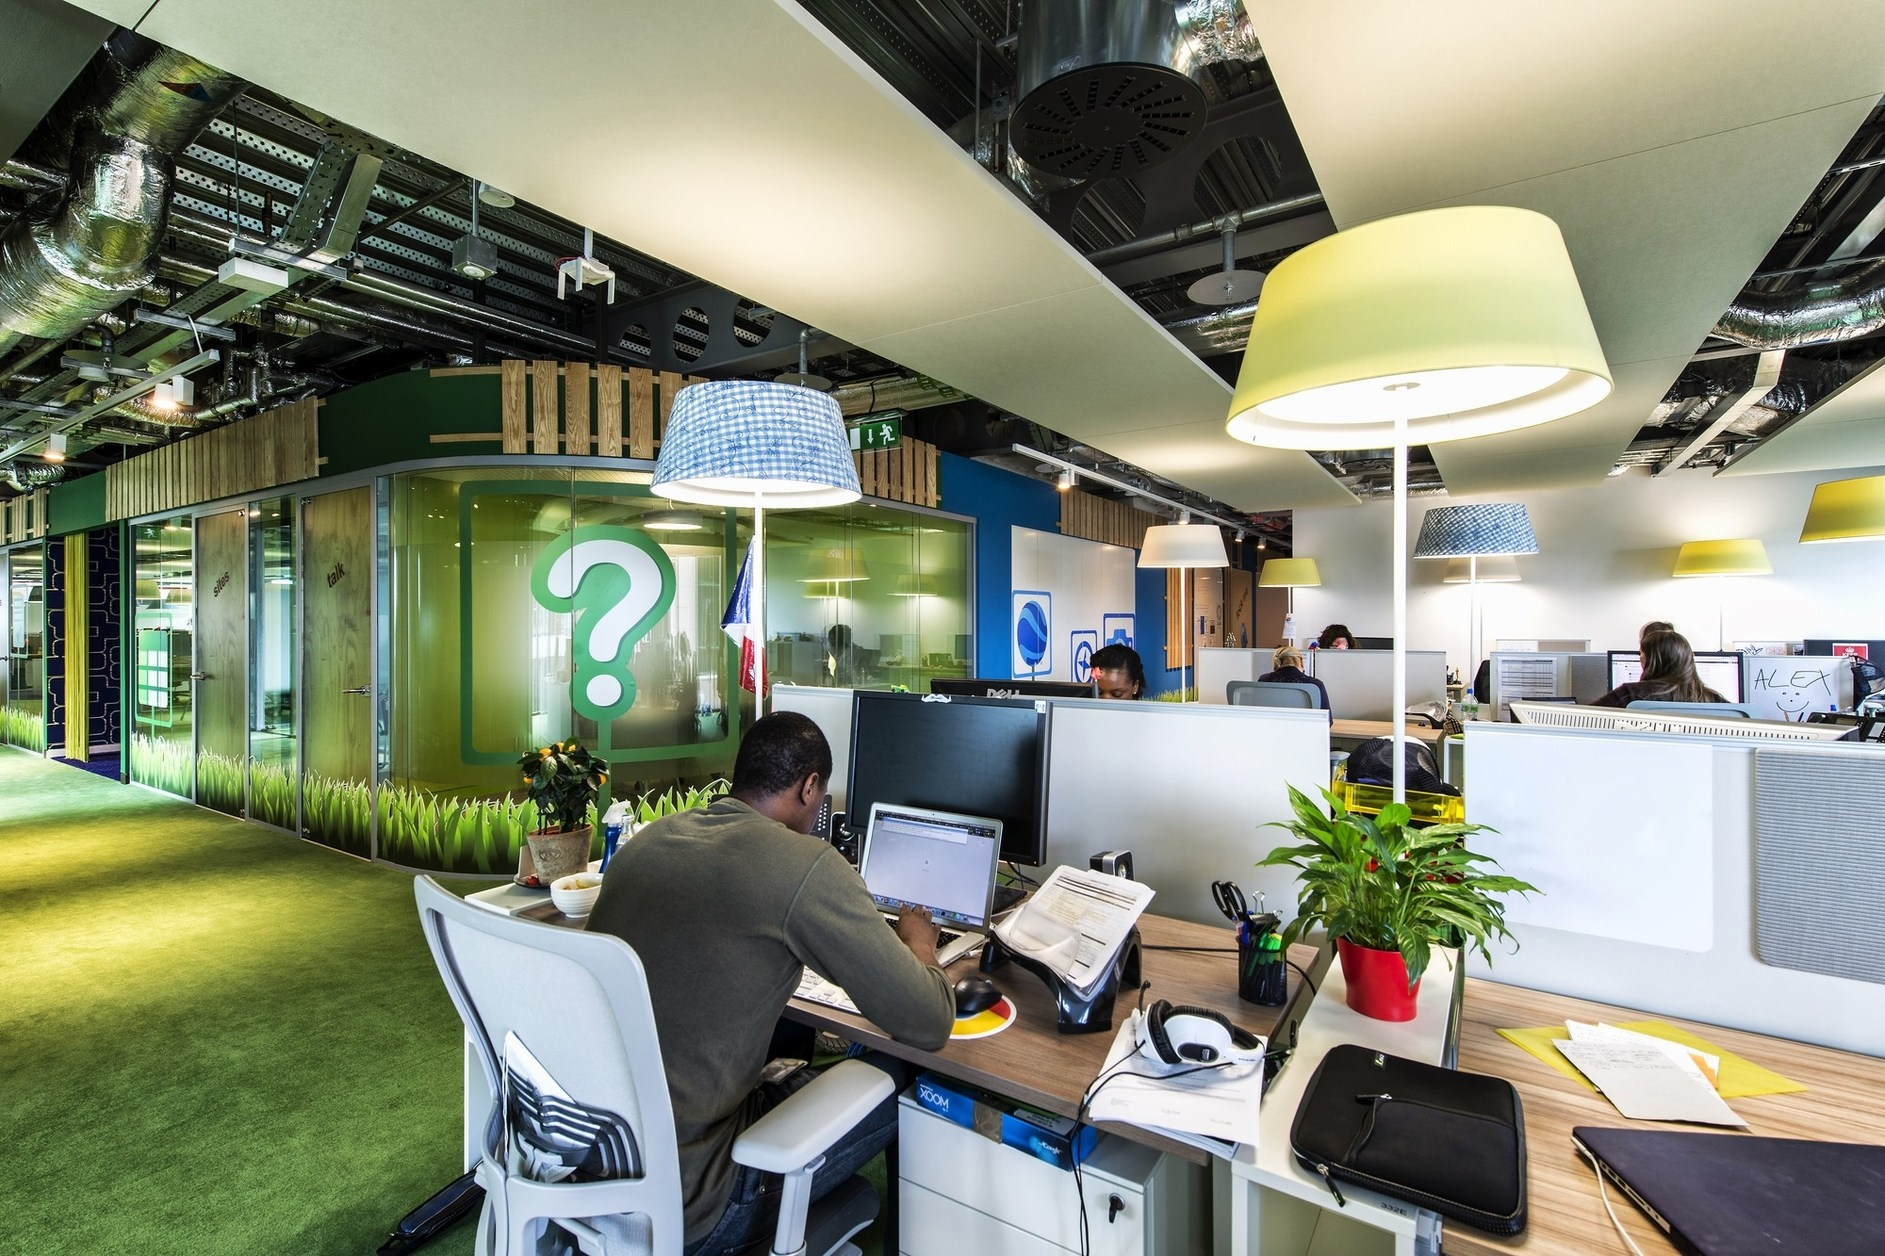 Google campus dublin by camenzind evolution henry j for Dublin interior design firm